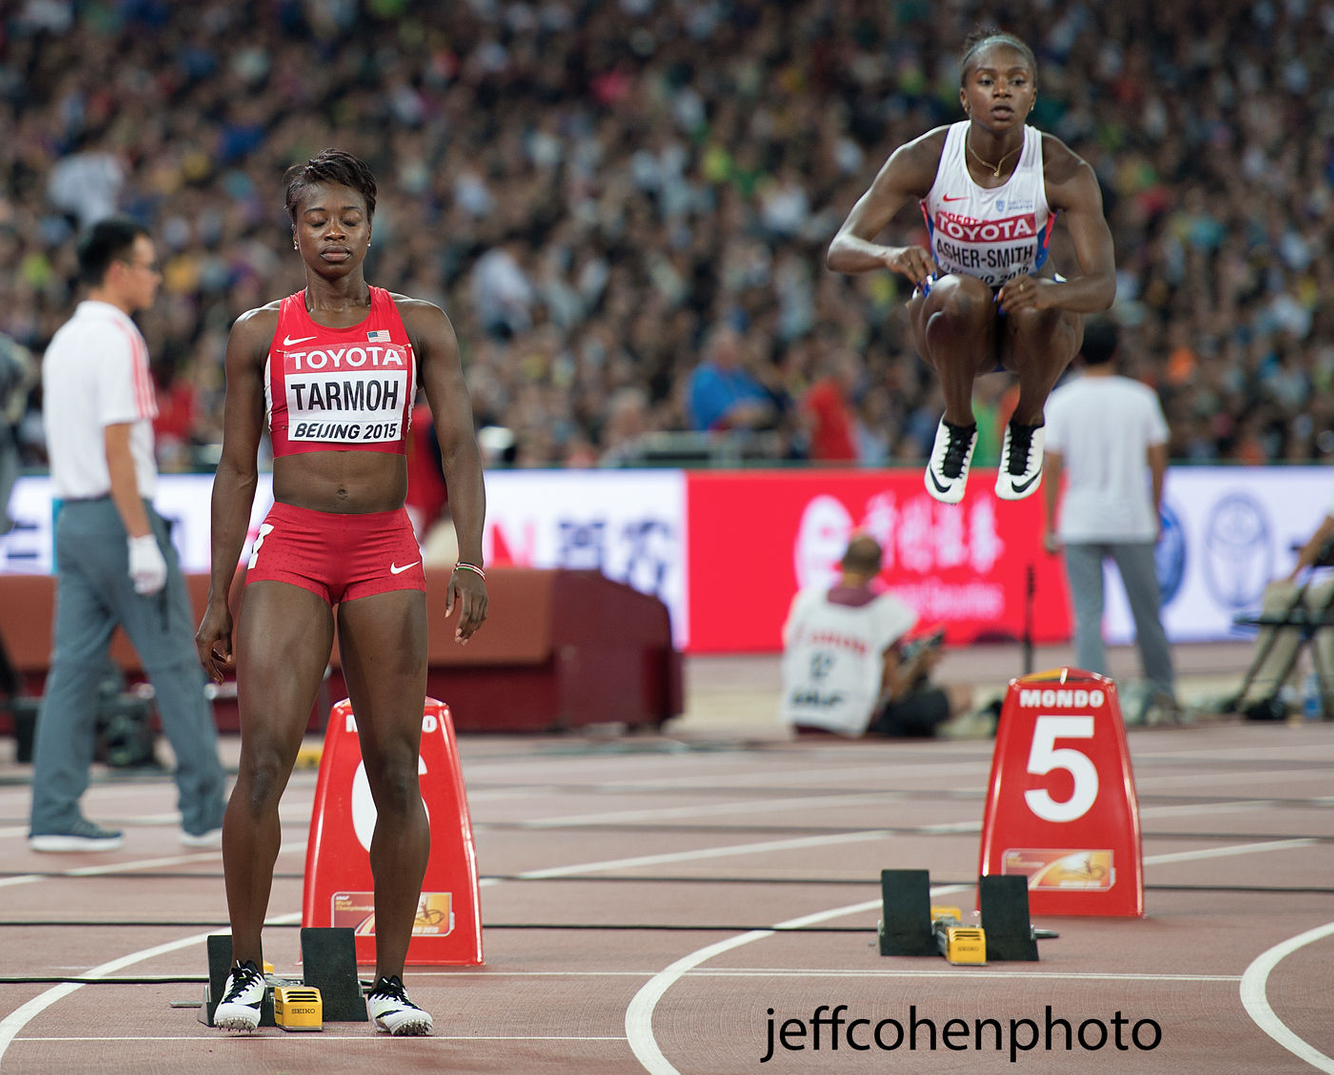 1beijing2015_night__6_tarmoh_asher_smith_200m_semis__jeff_cohen_photo_25468_web.jpg